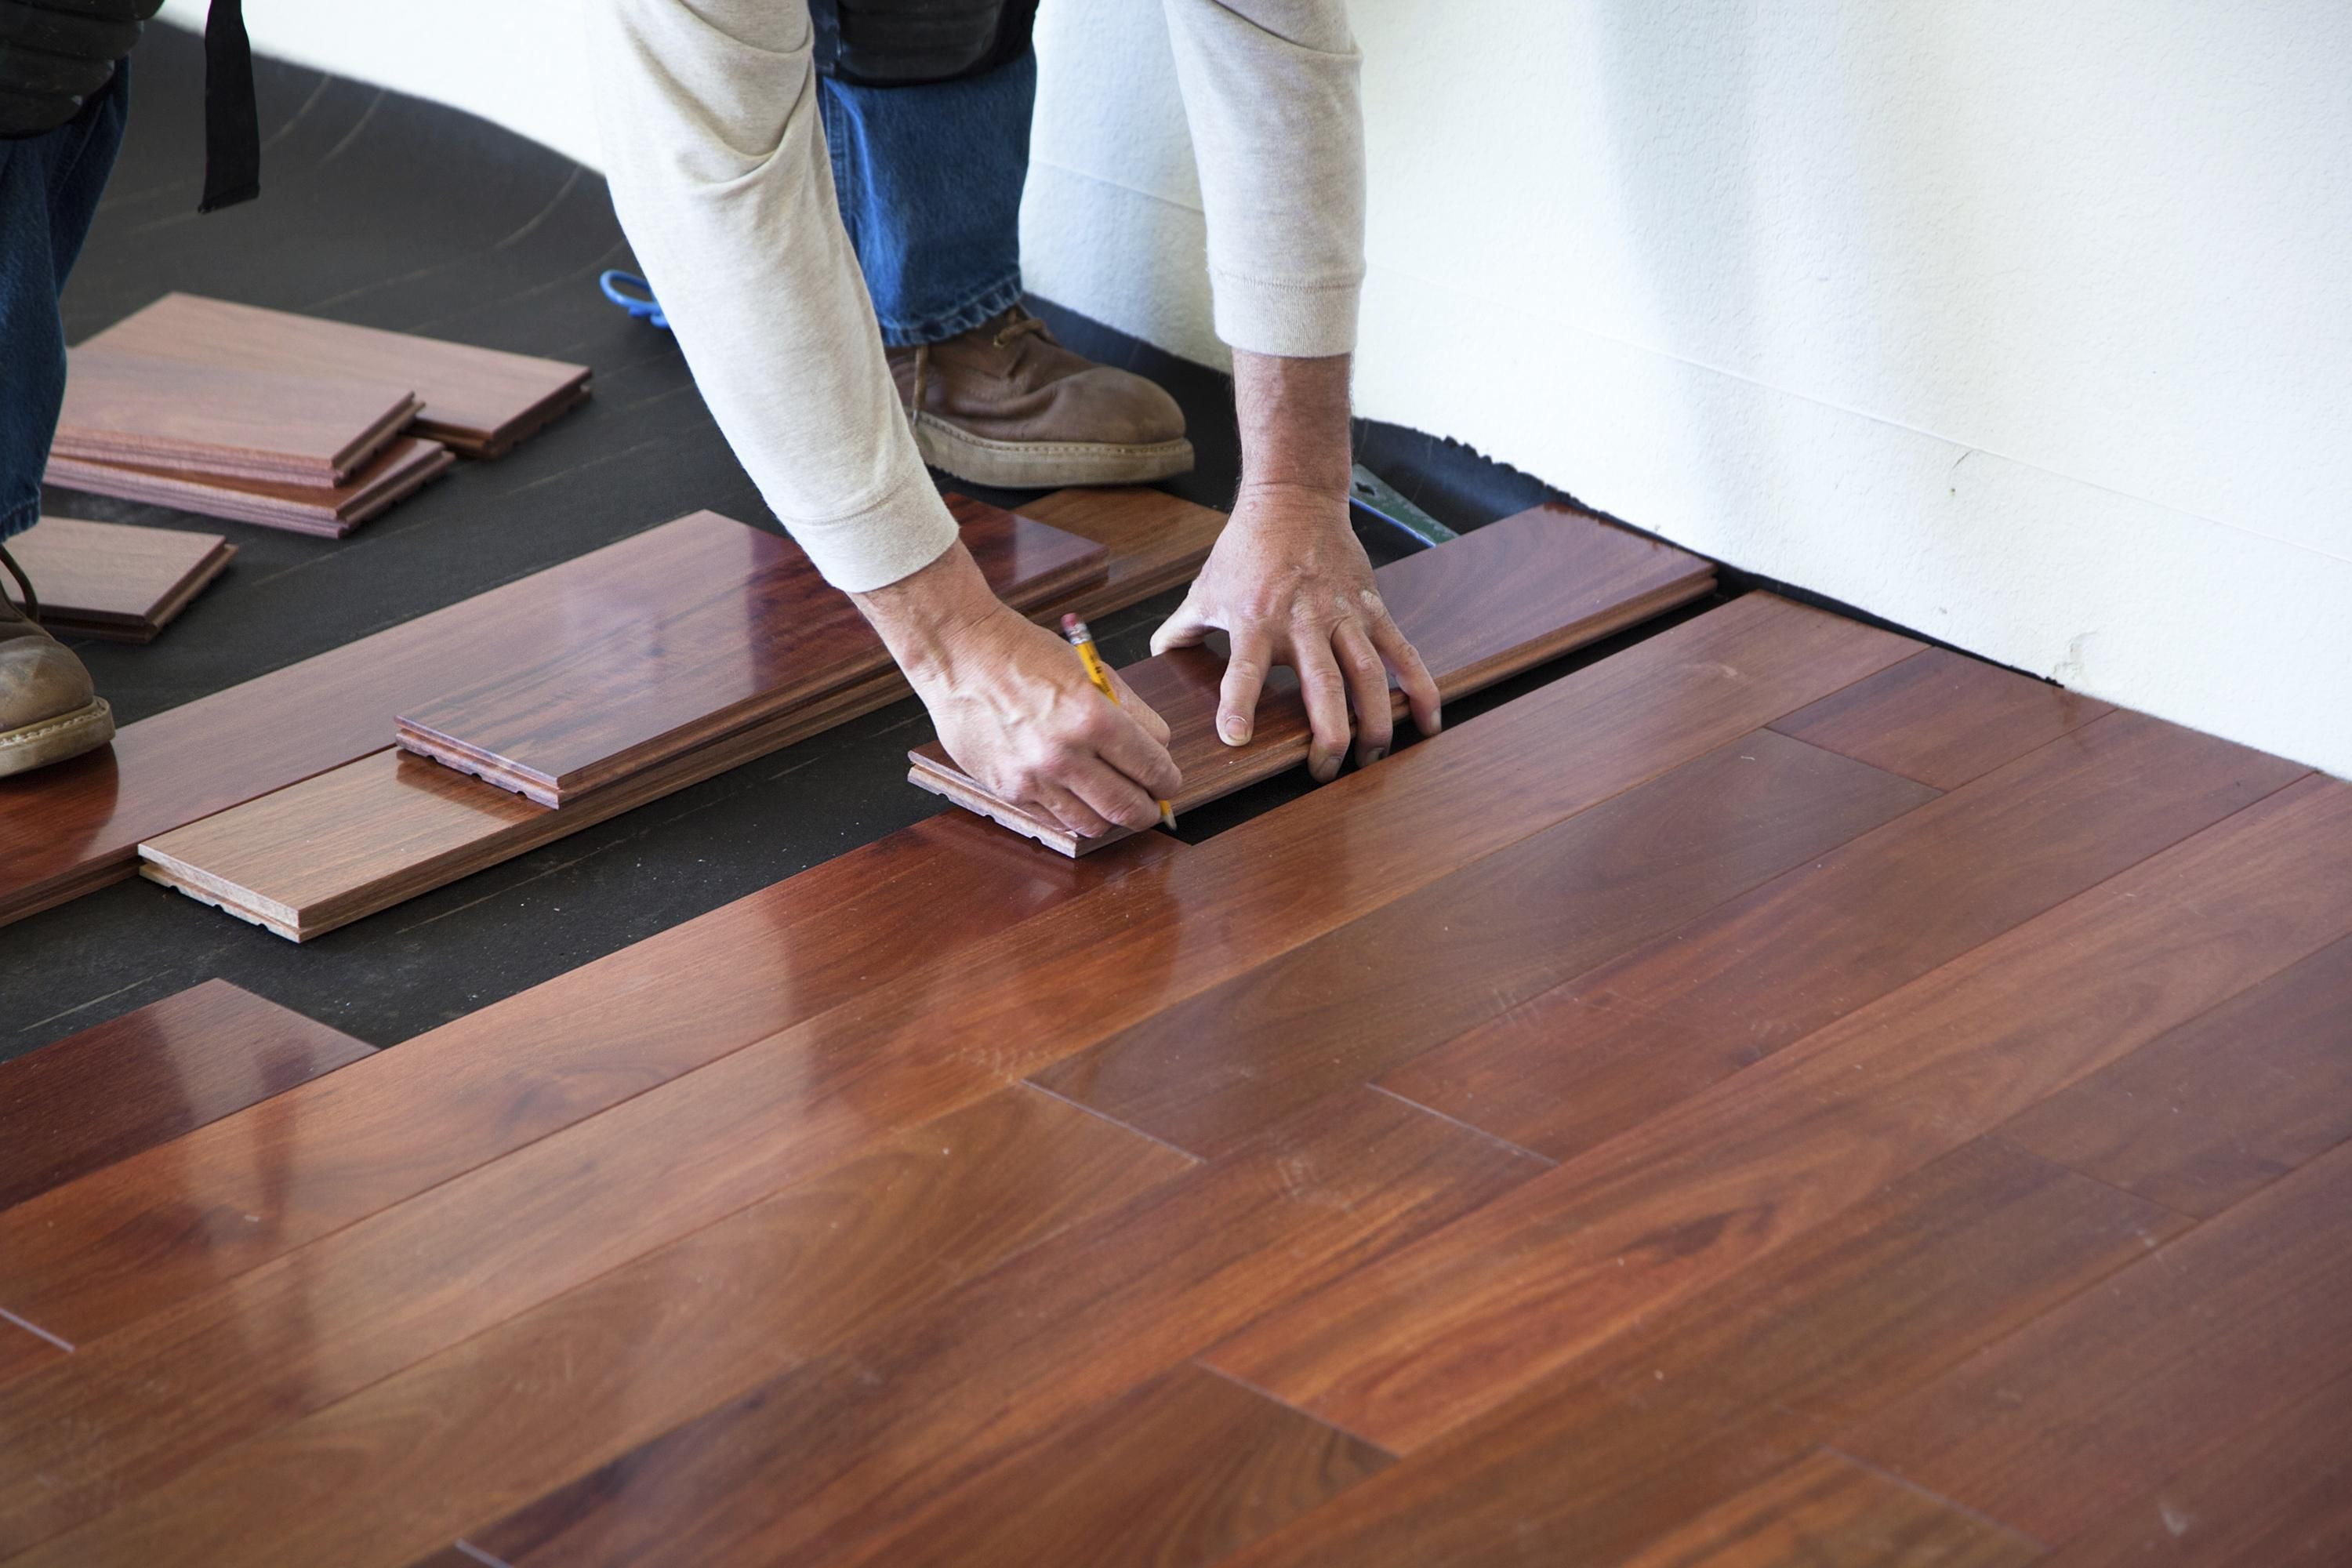 Hardwood Floor Refinishing Haddonfield Nj Of 18 New How Much Do Hardwood Floors Cost Image Dizpos Com with Regard to How Much Do Hardwood Floors Cost Inspirational This is How Much Hardwood Flooring to order Images